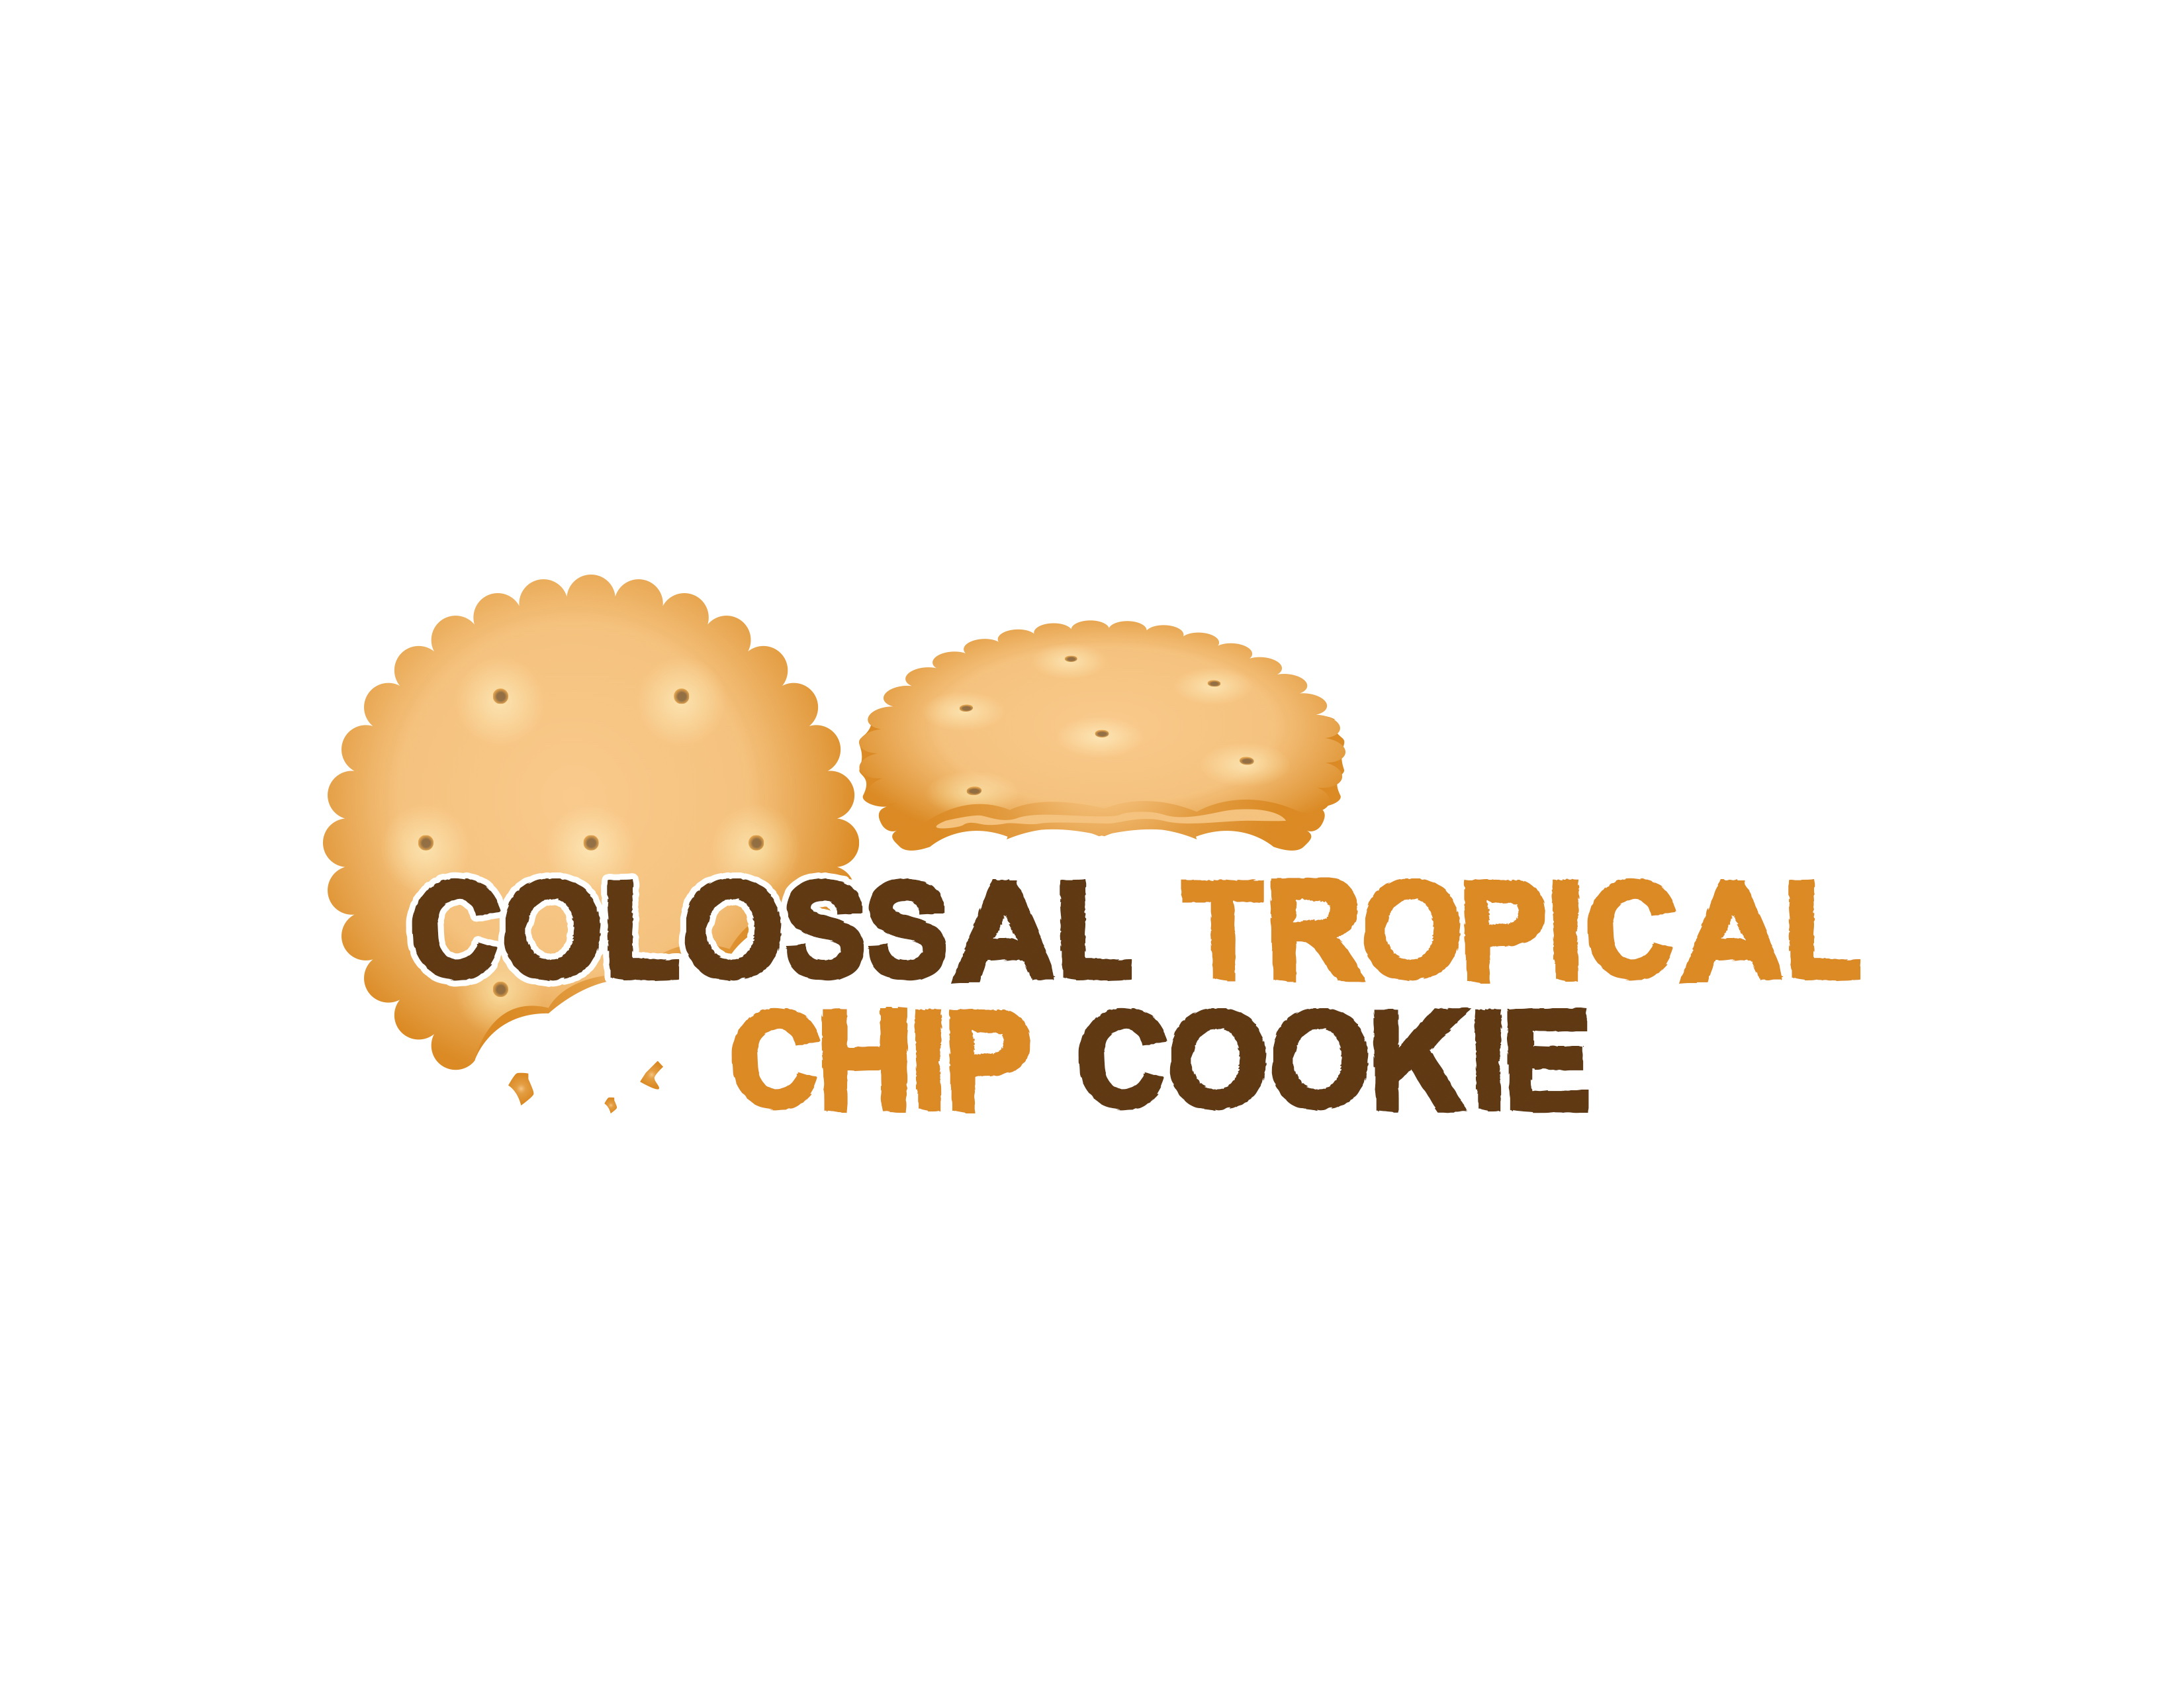 World patent marketing invention team introduces the next hottest colossal tropical chip cookie a recipe patent formulated to provide a delicious and healthy tropical cookie snack forumfinder Choice Image